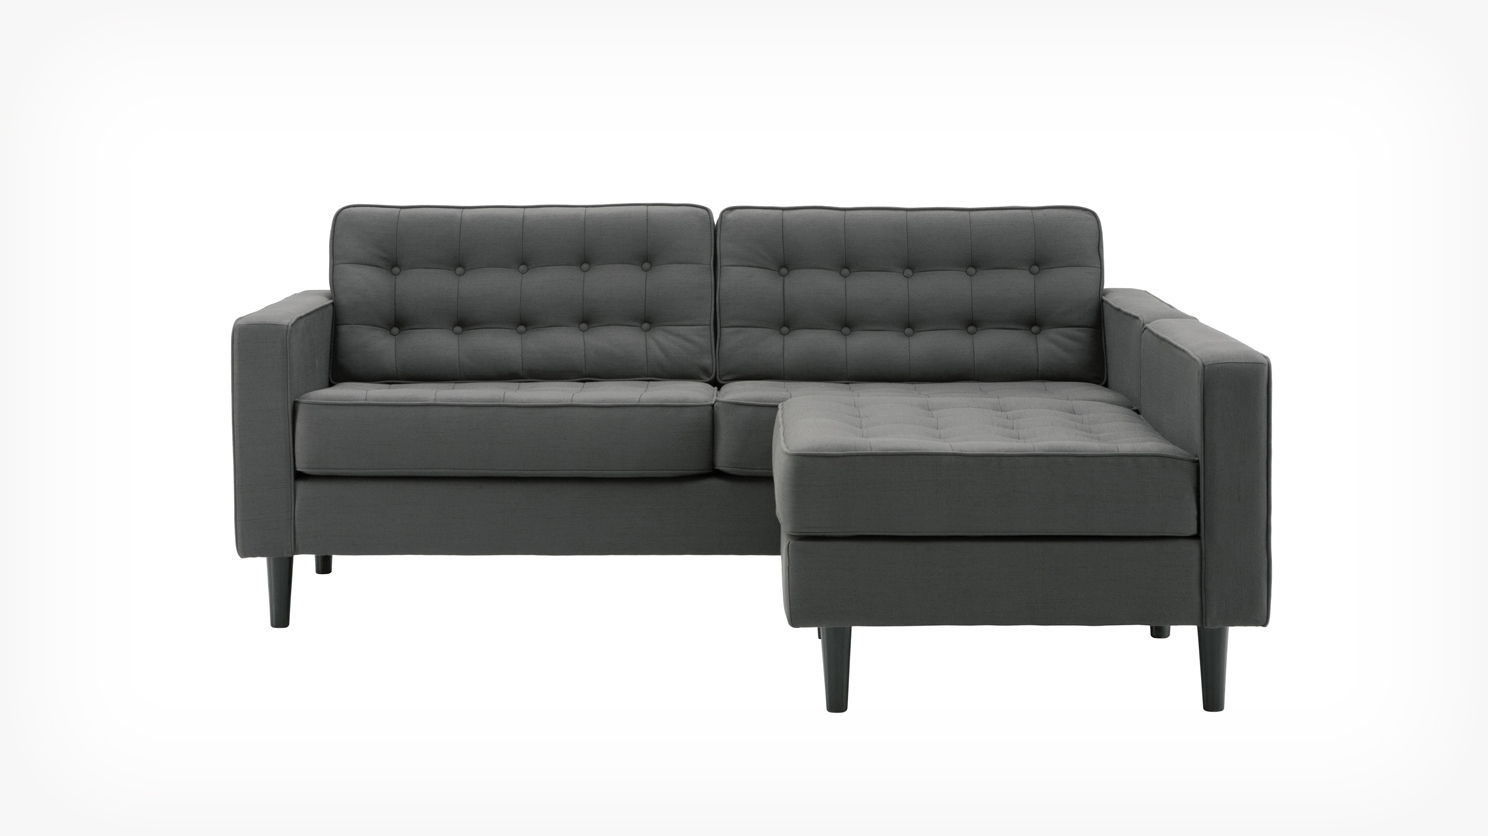 Eq3 | Reverie Apartment 2 Piece Sectional Sofa With Chaise – Fabric With Eq3 Sectional Sofas (View 2 of 10)